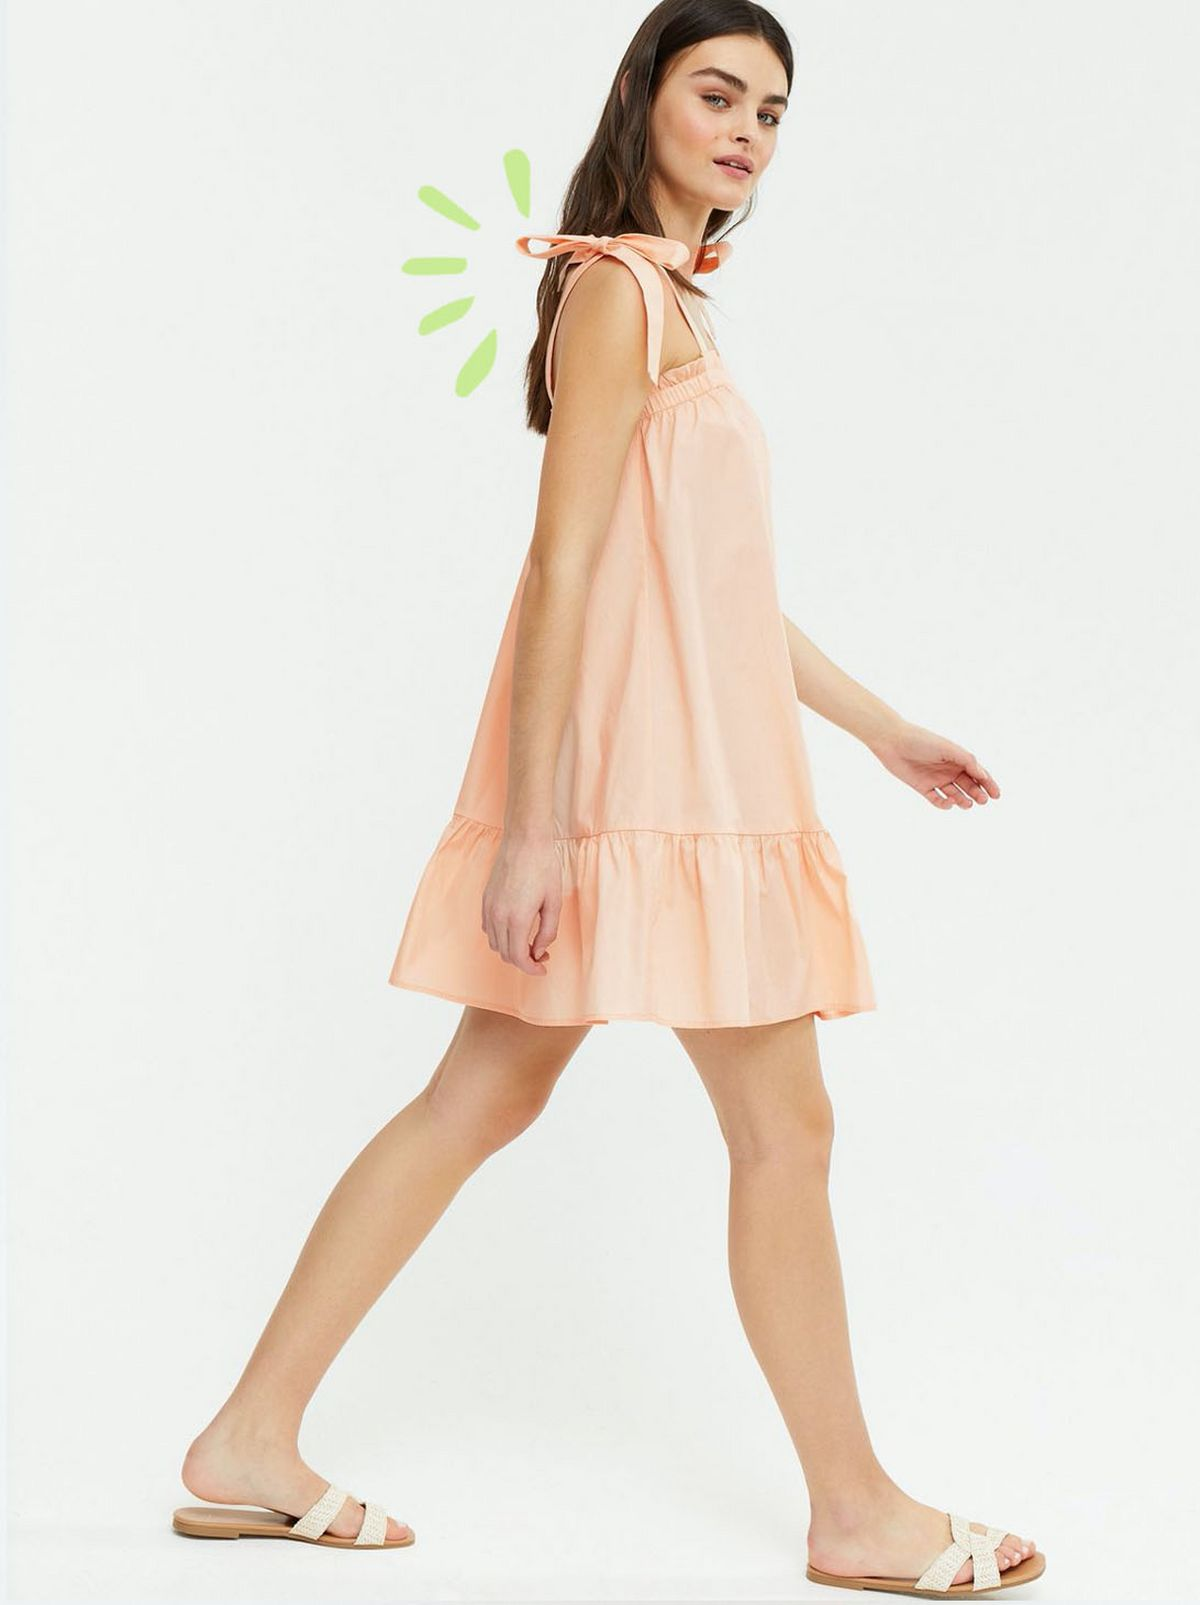 Woman wearing a Coral Tie Strap Tiered Mini Sundress.